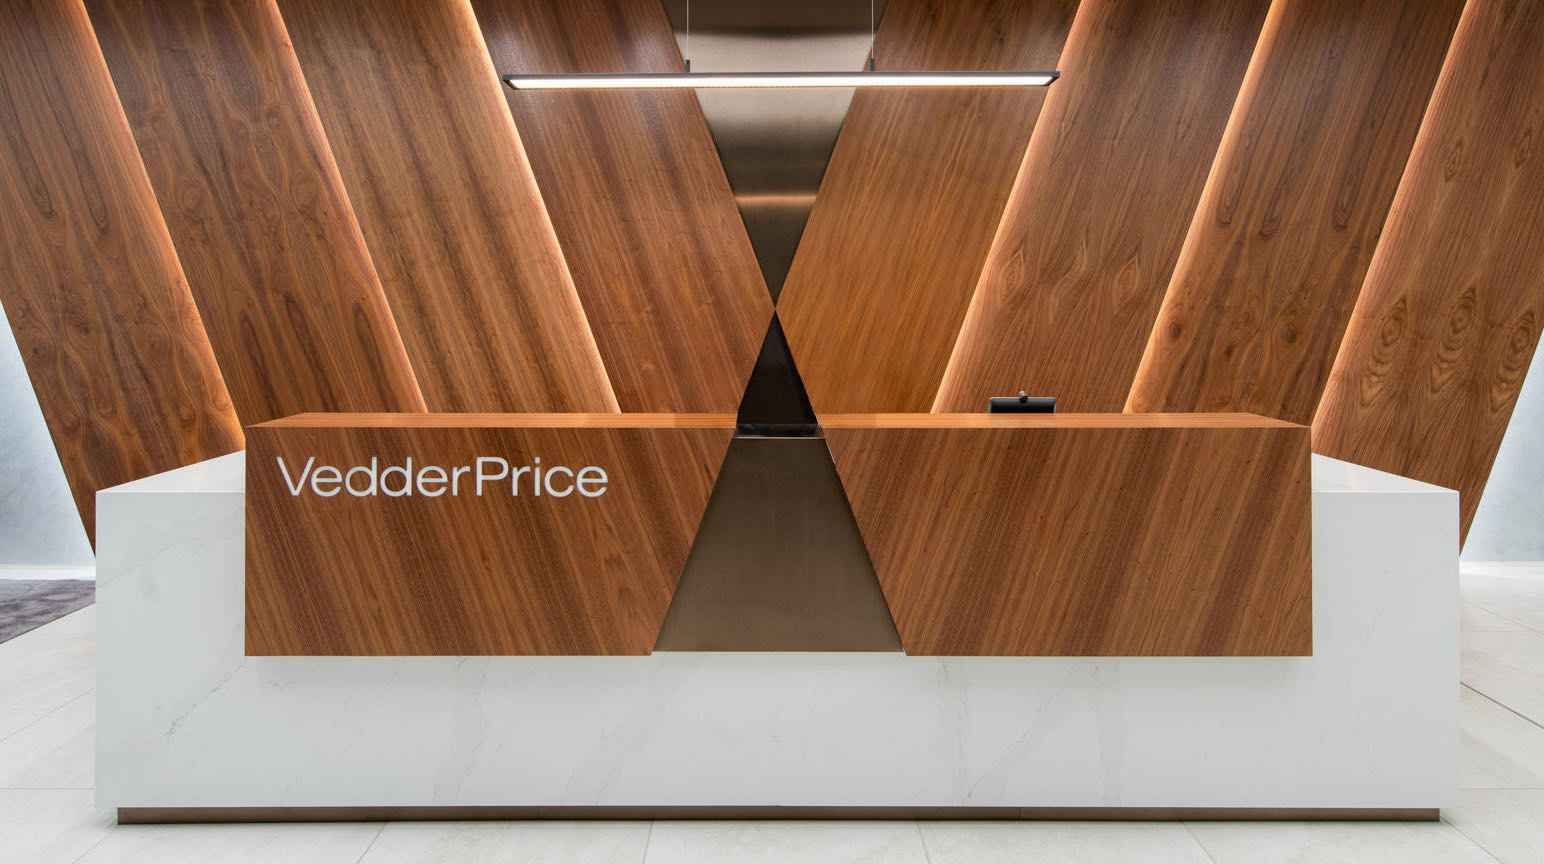 vedder-price-london-office-5